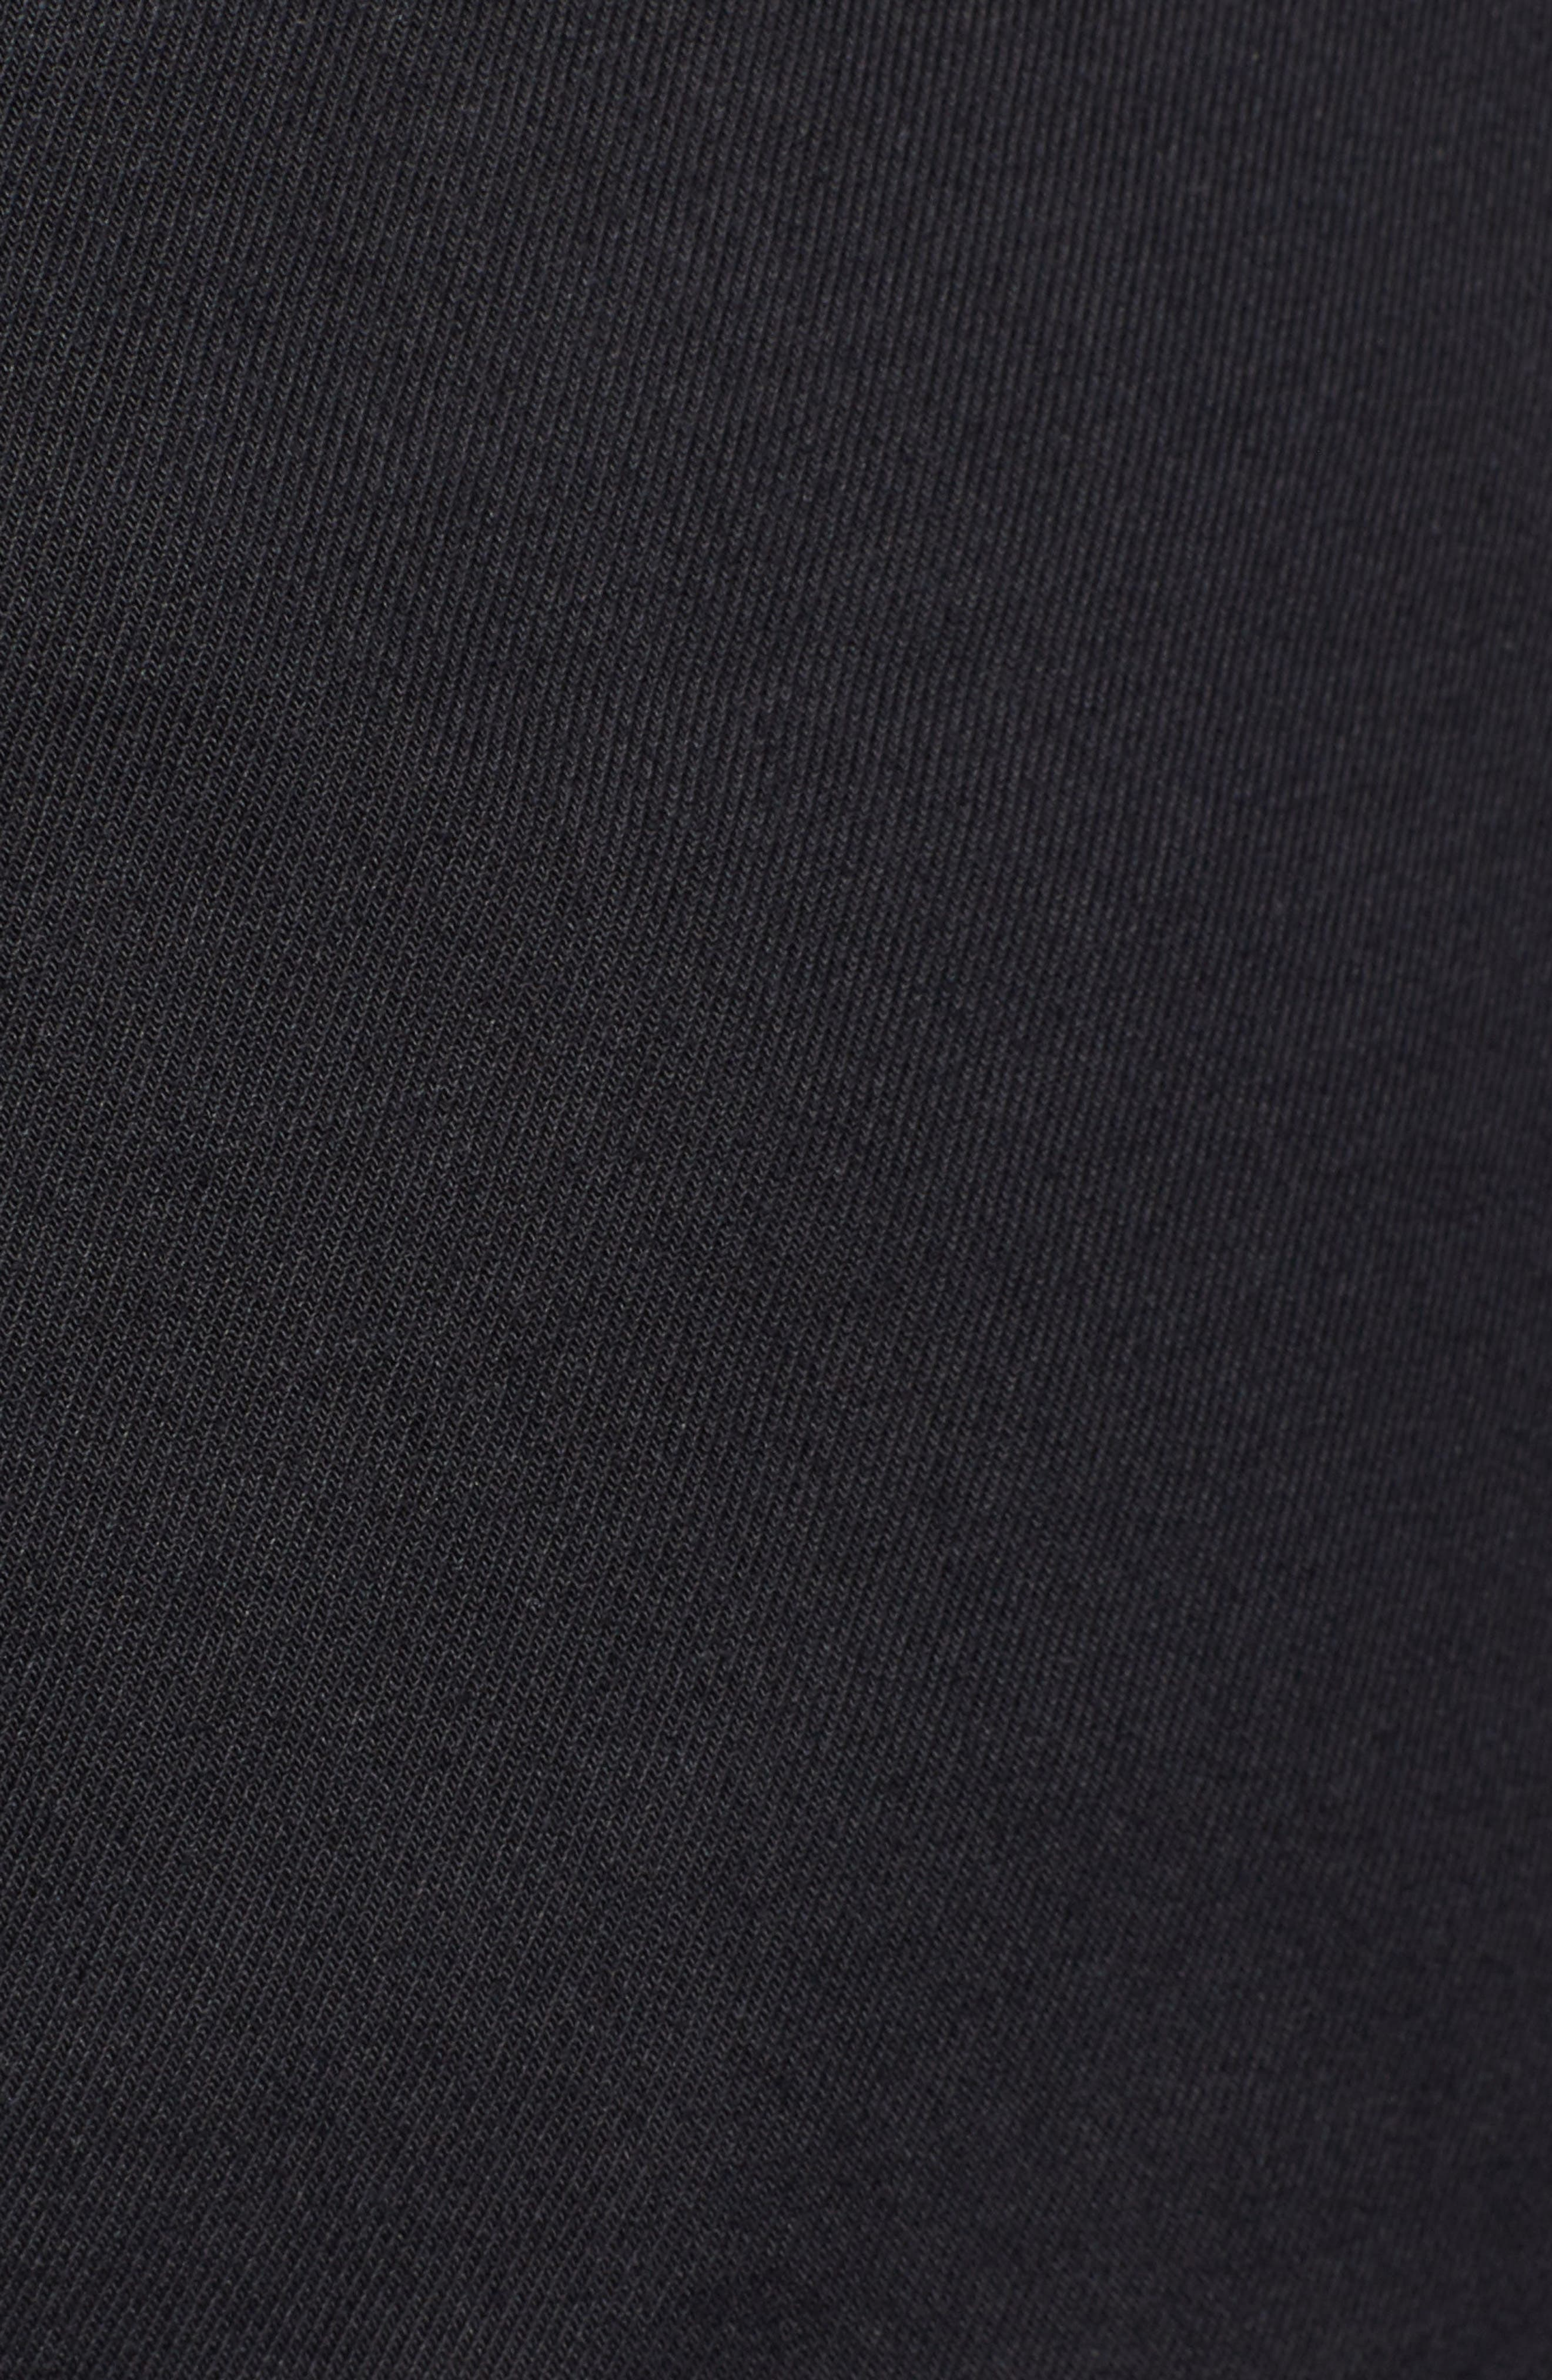 CASLON<SUP>®</SUP>, Belted Twill Shorts, Alternate thumbnail 5, color, BLACK